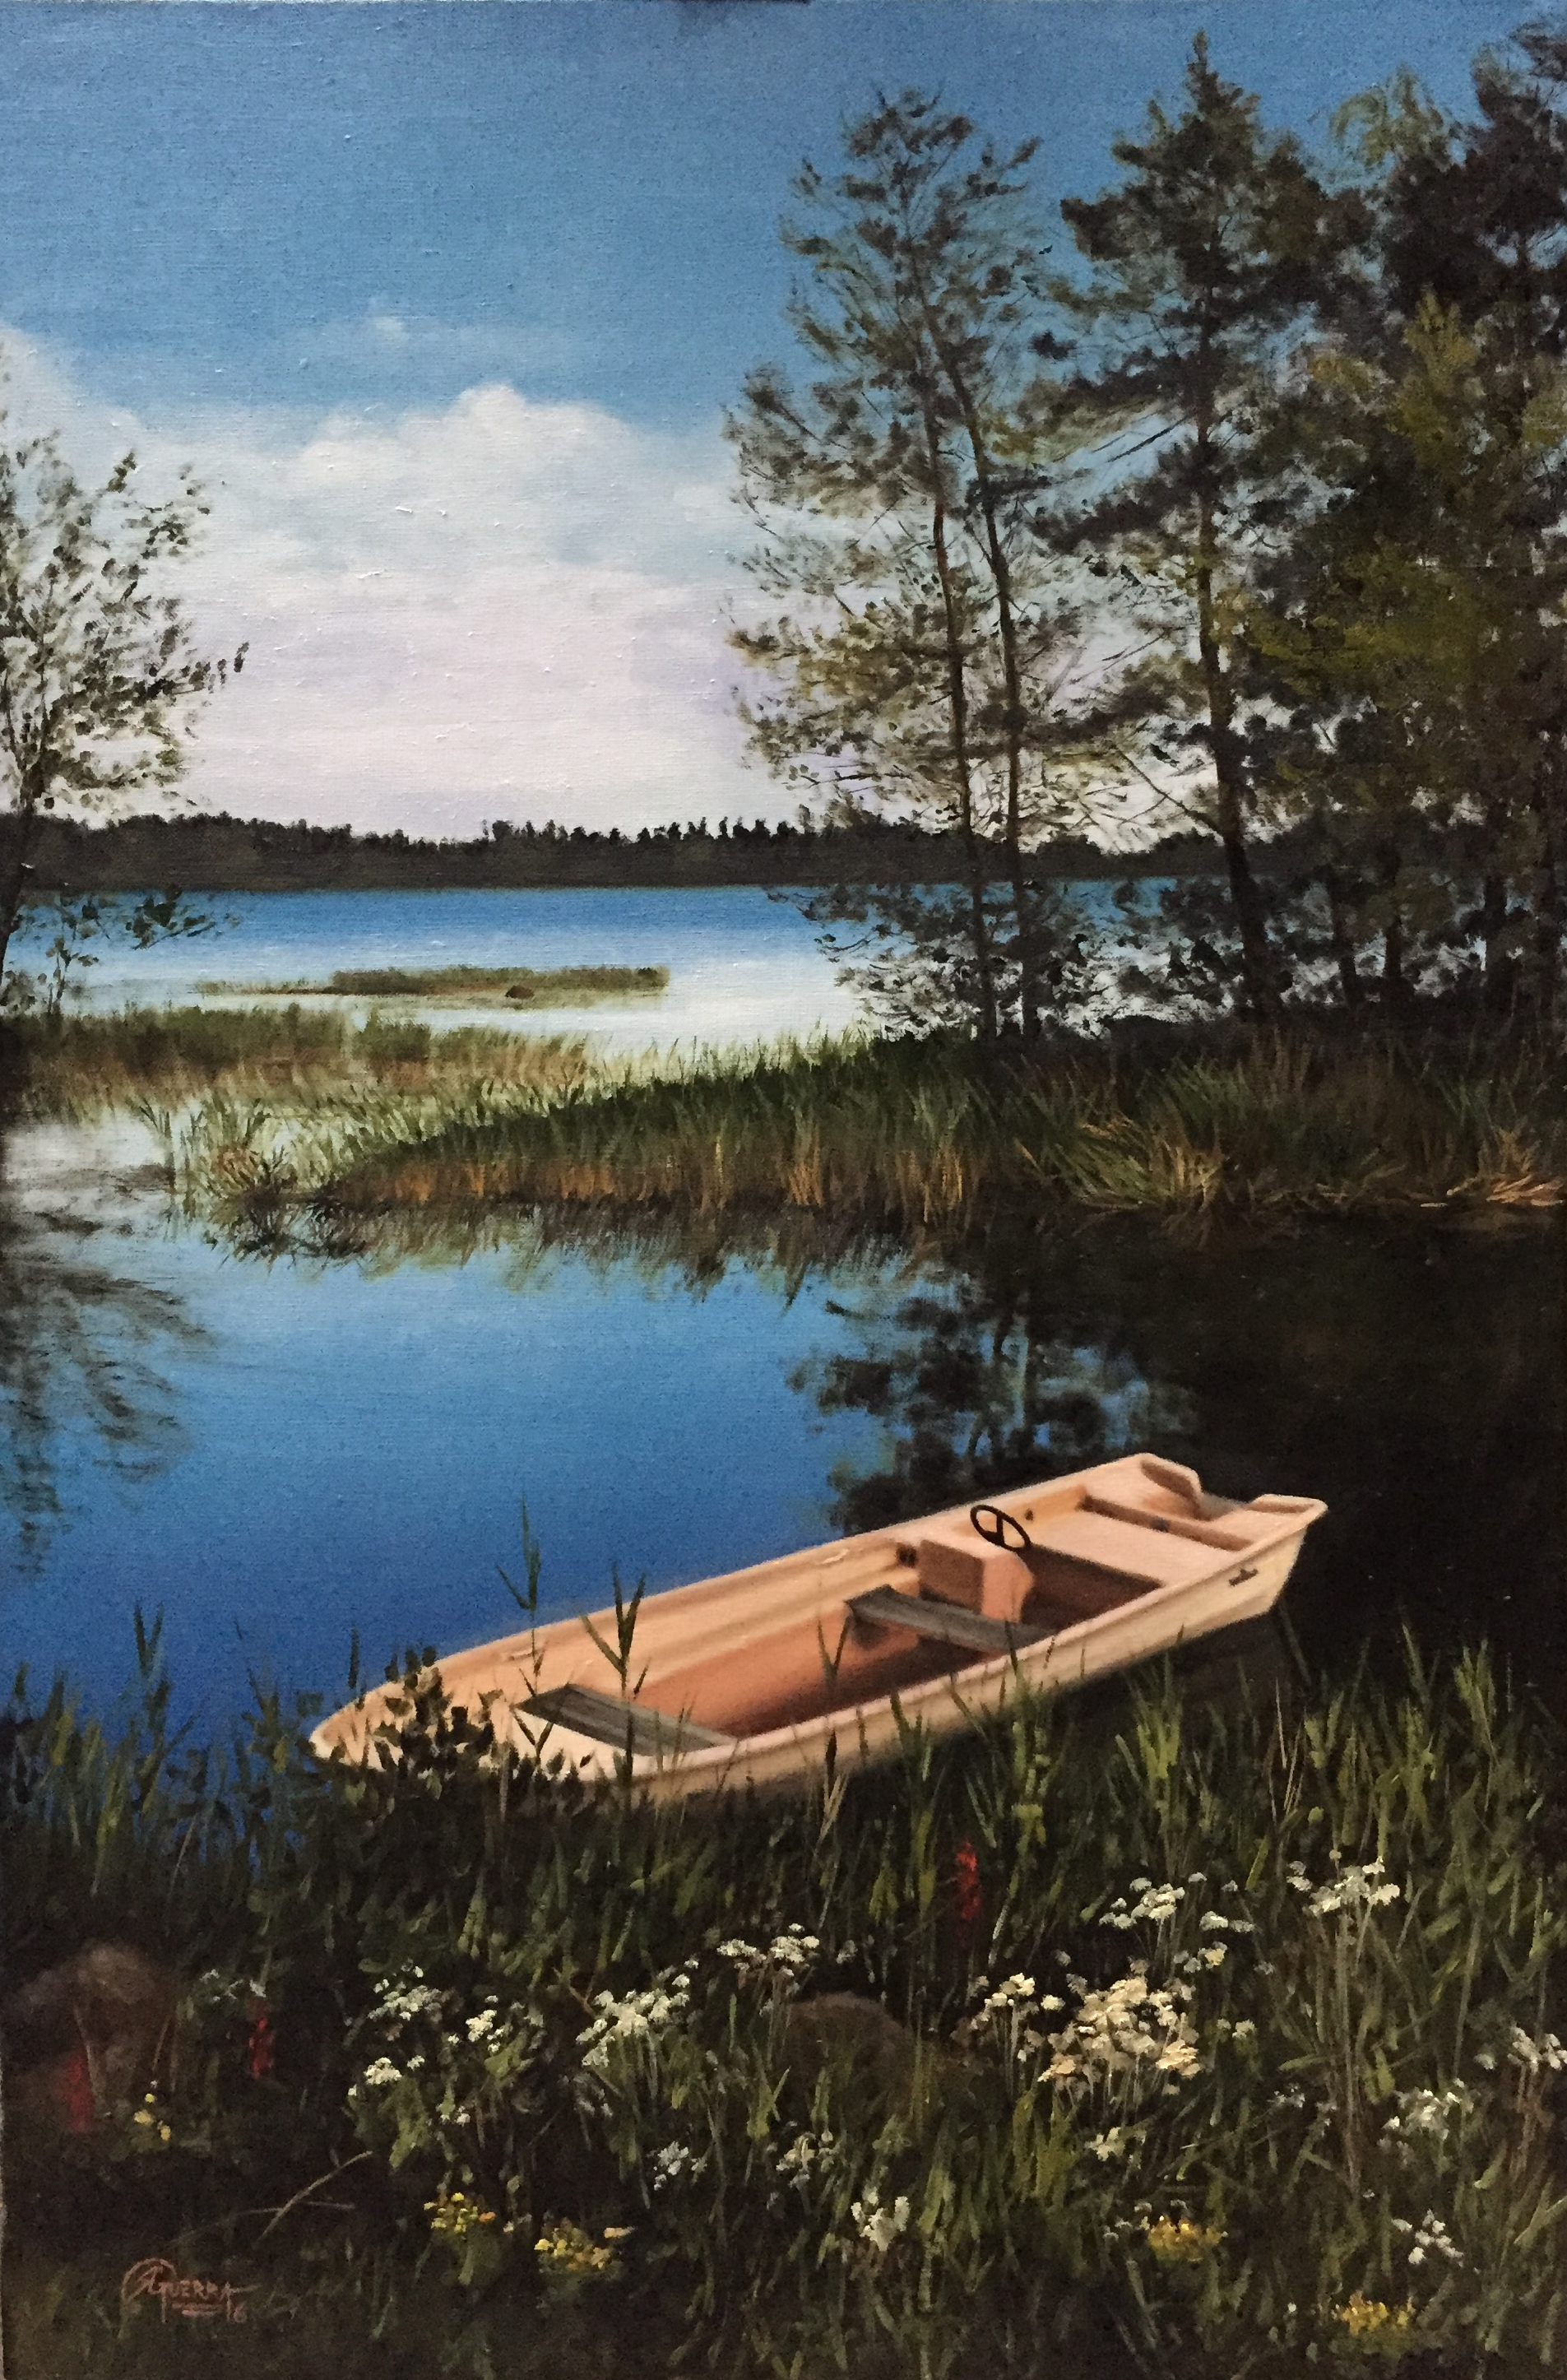 A Boat on a Lake in Finland Spring, Rafael Guerra Painting